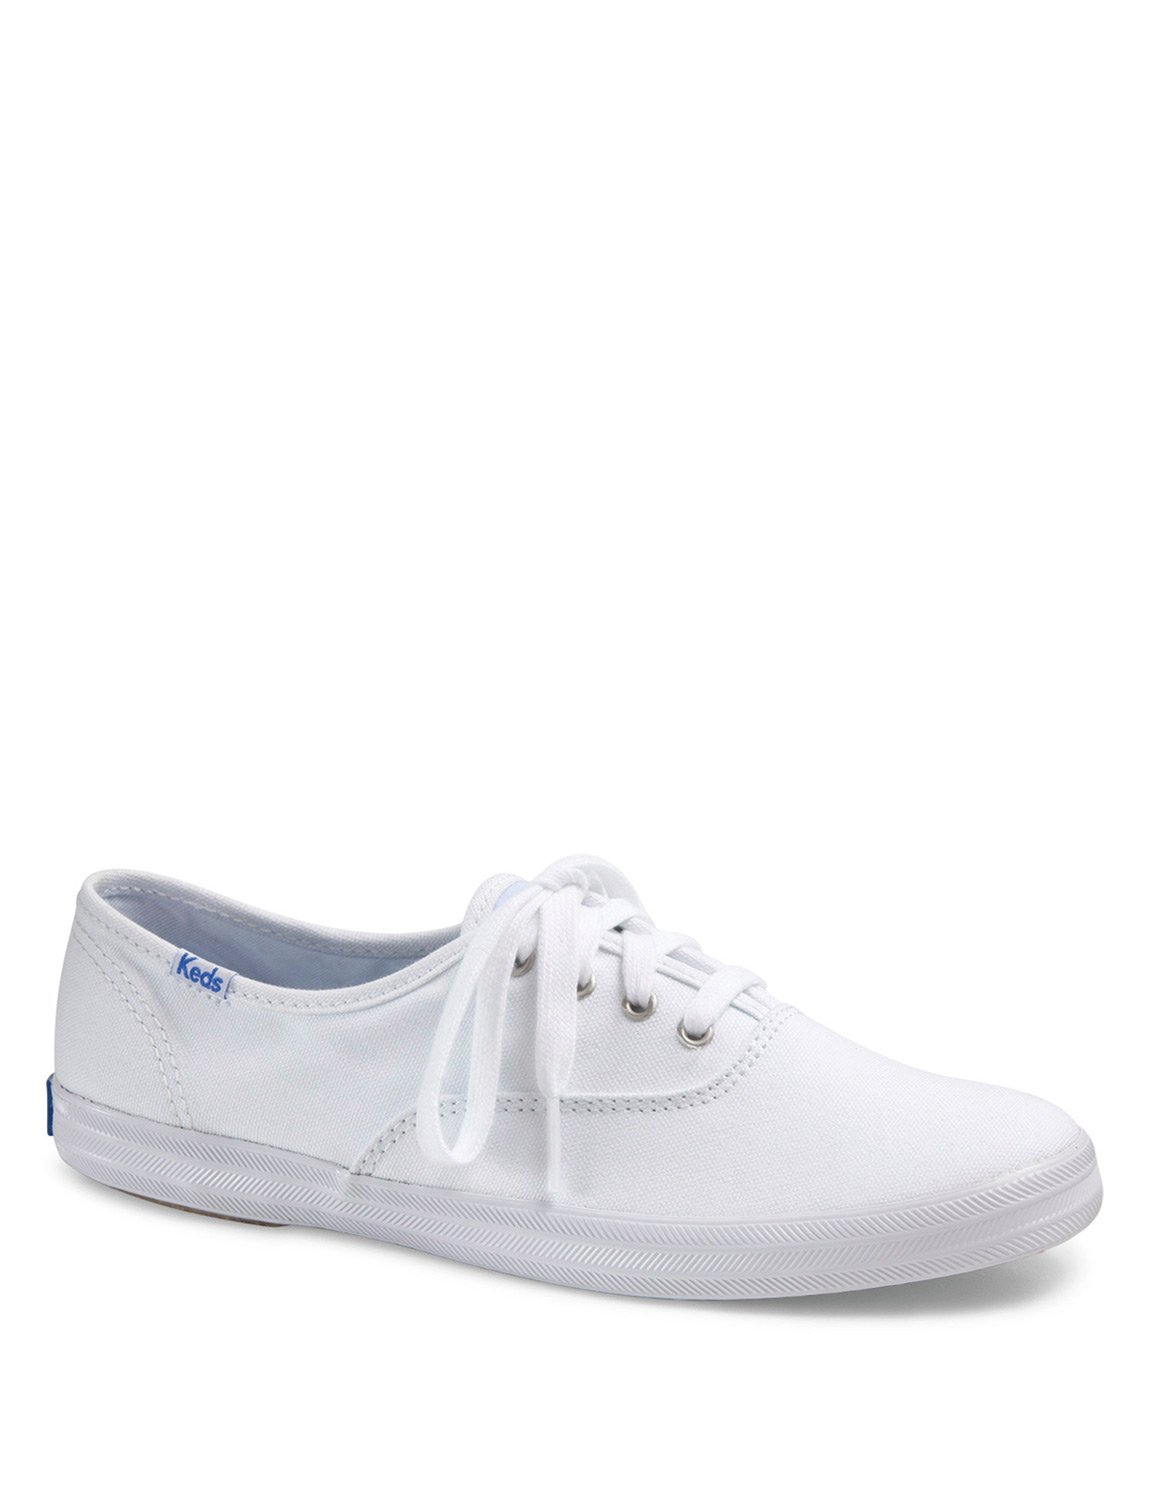 24dbc1a43bf Amazon.com  Keds Women s Champion Oxford Shoe in White  Shoes